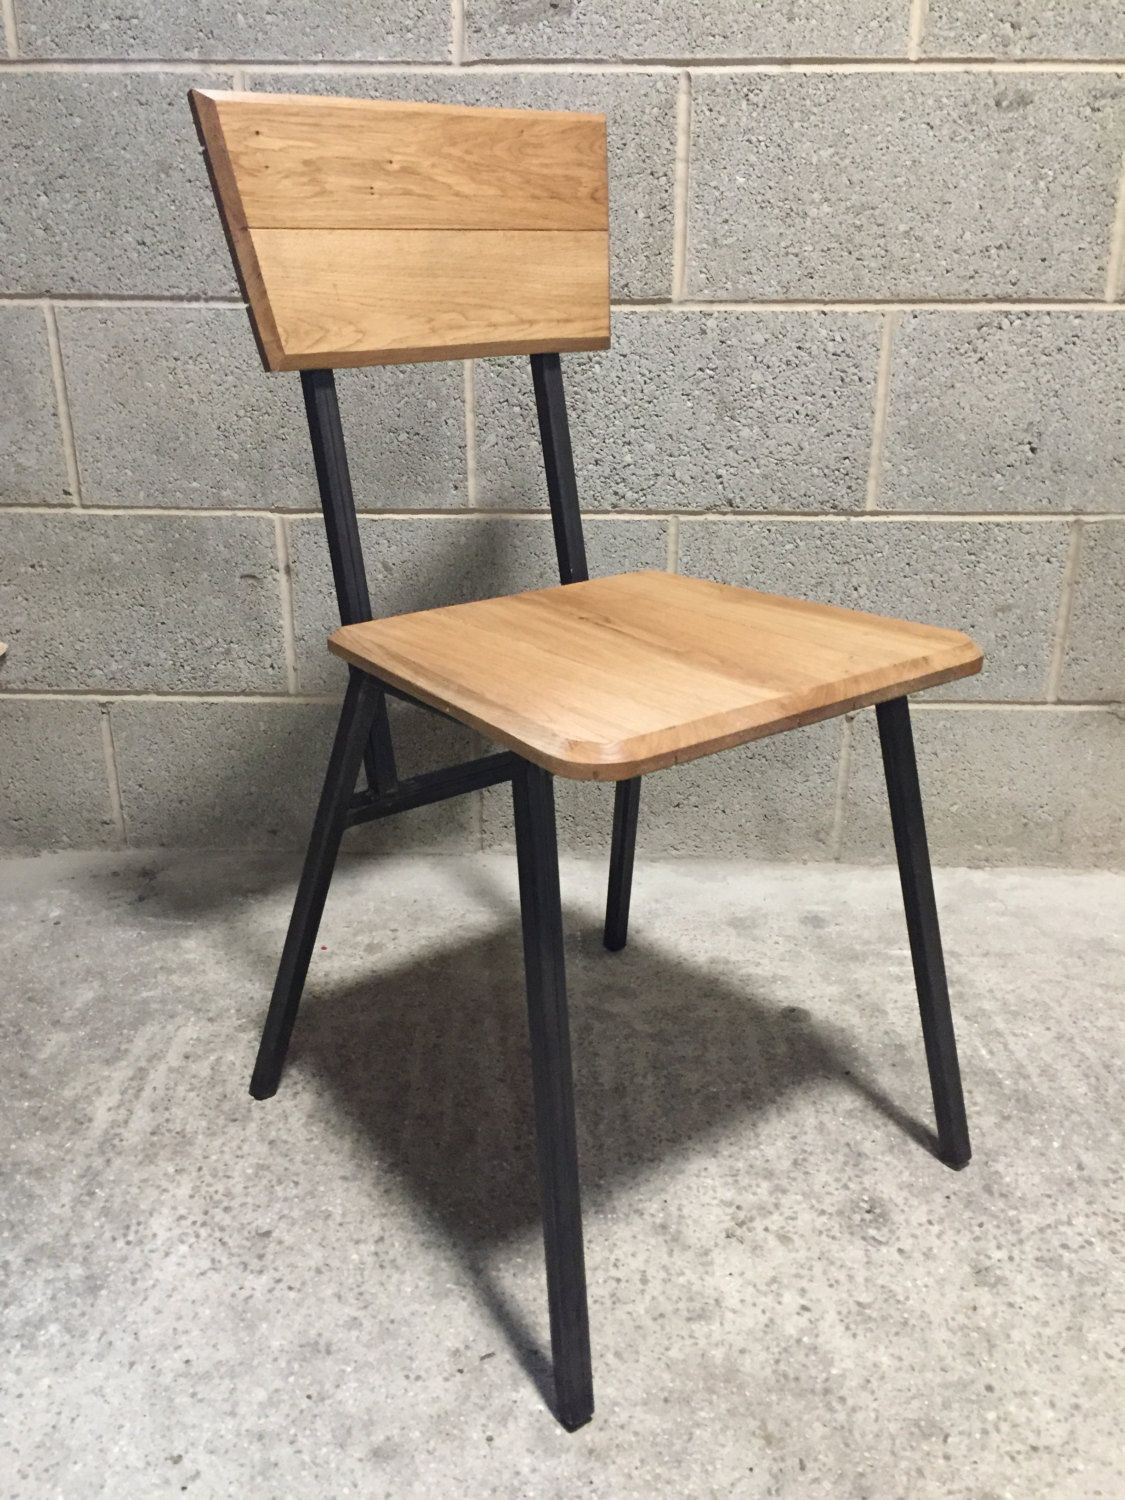 7 Retro Industrial Dining Chair is part of Retro chair - 7 table